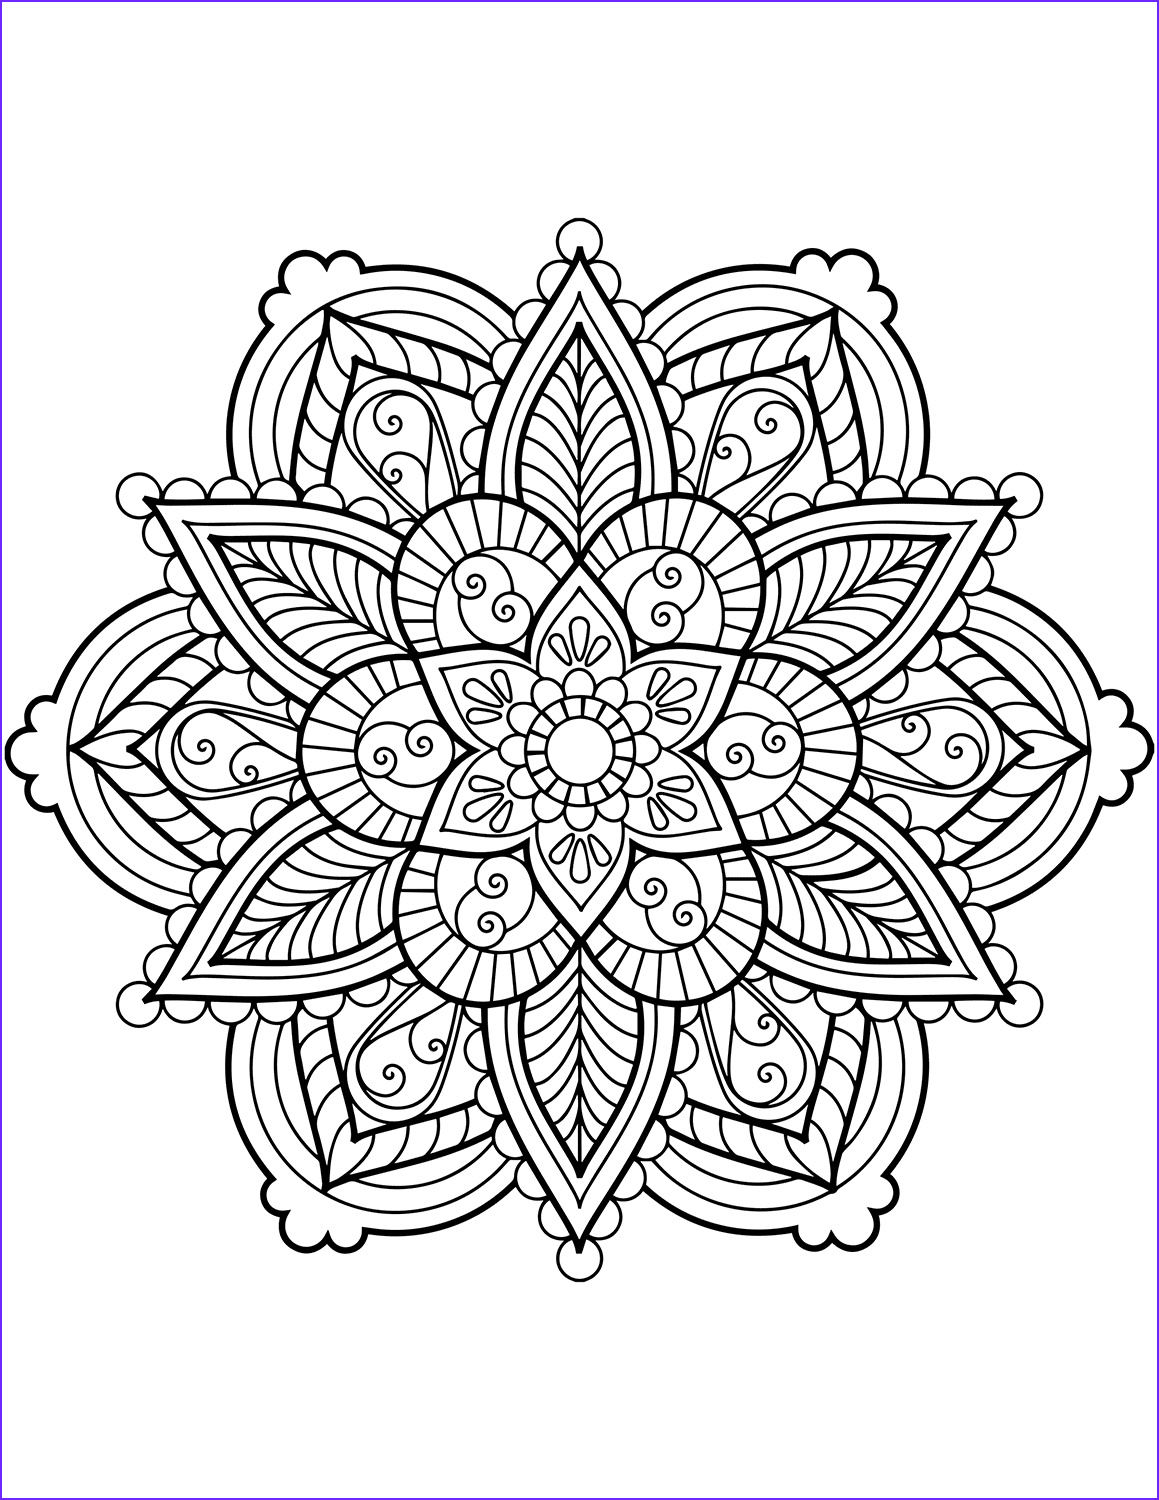 Mandalas Coloring Pages Best Of Image Flower Mandala Coloring Pages Best Coloring Pages for Kids